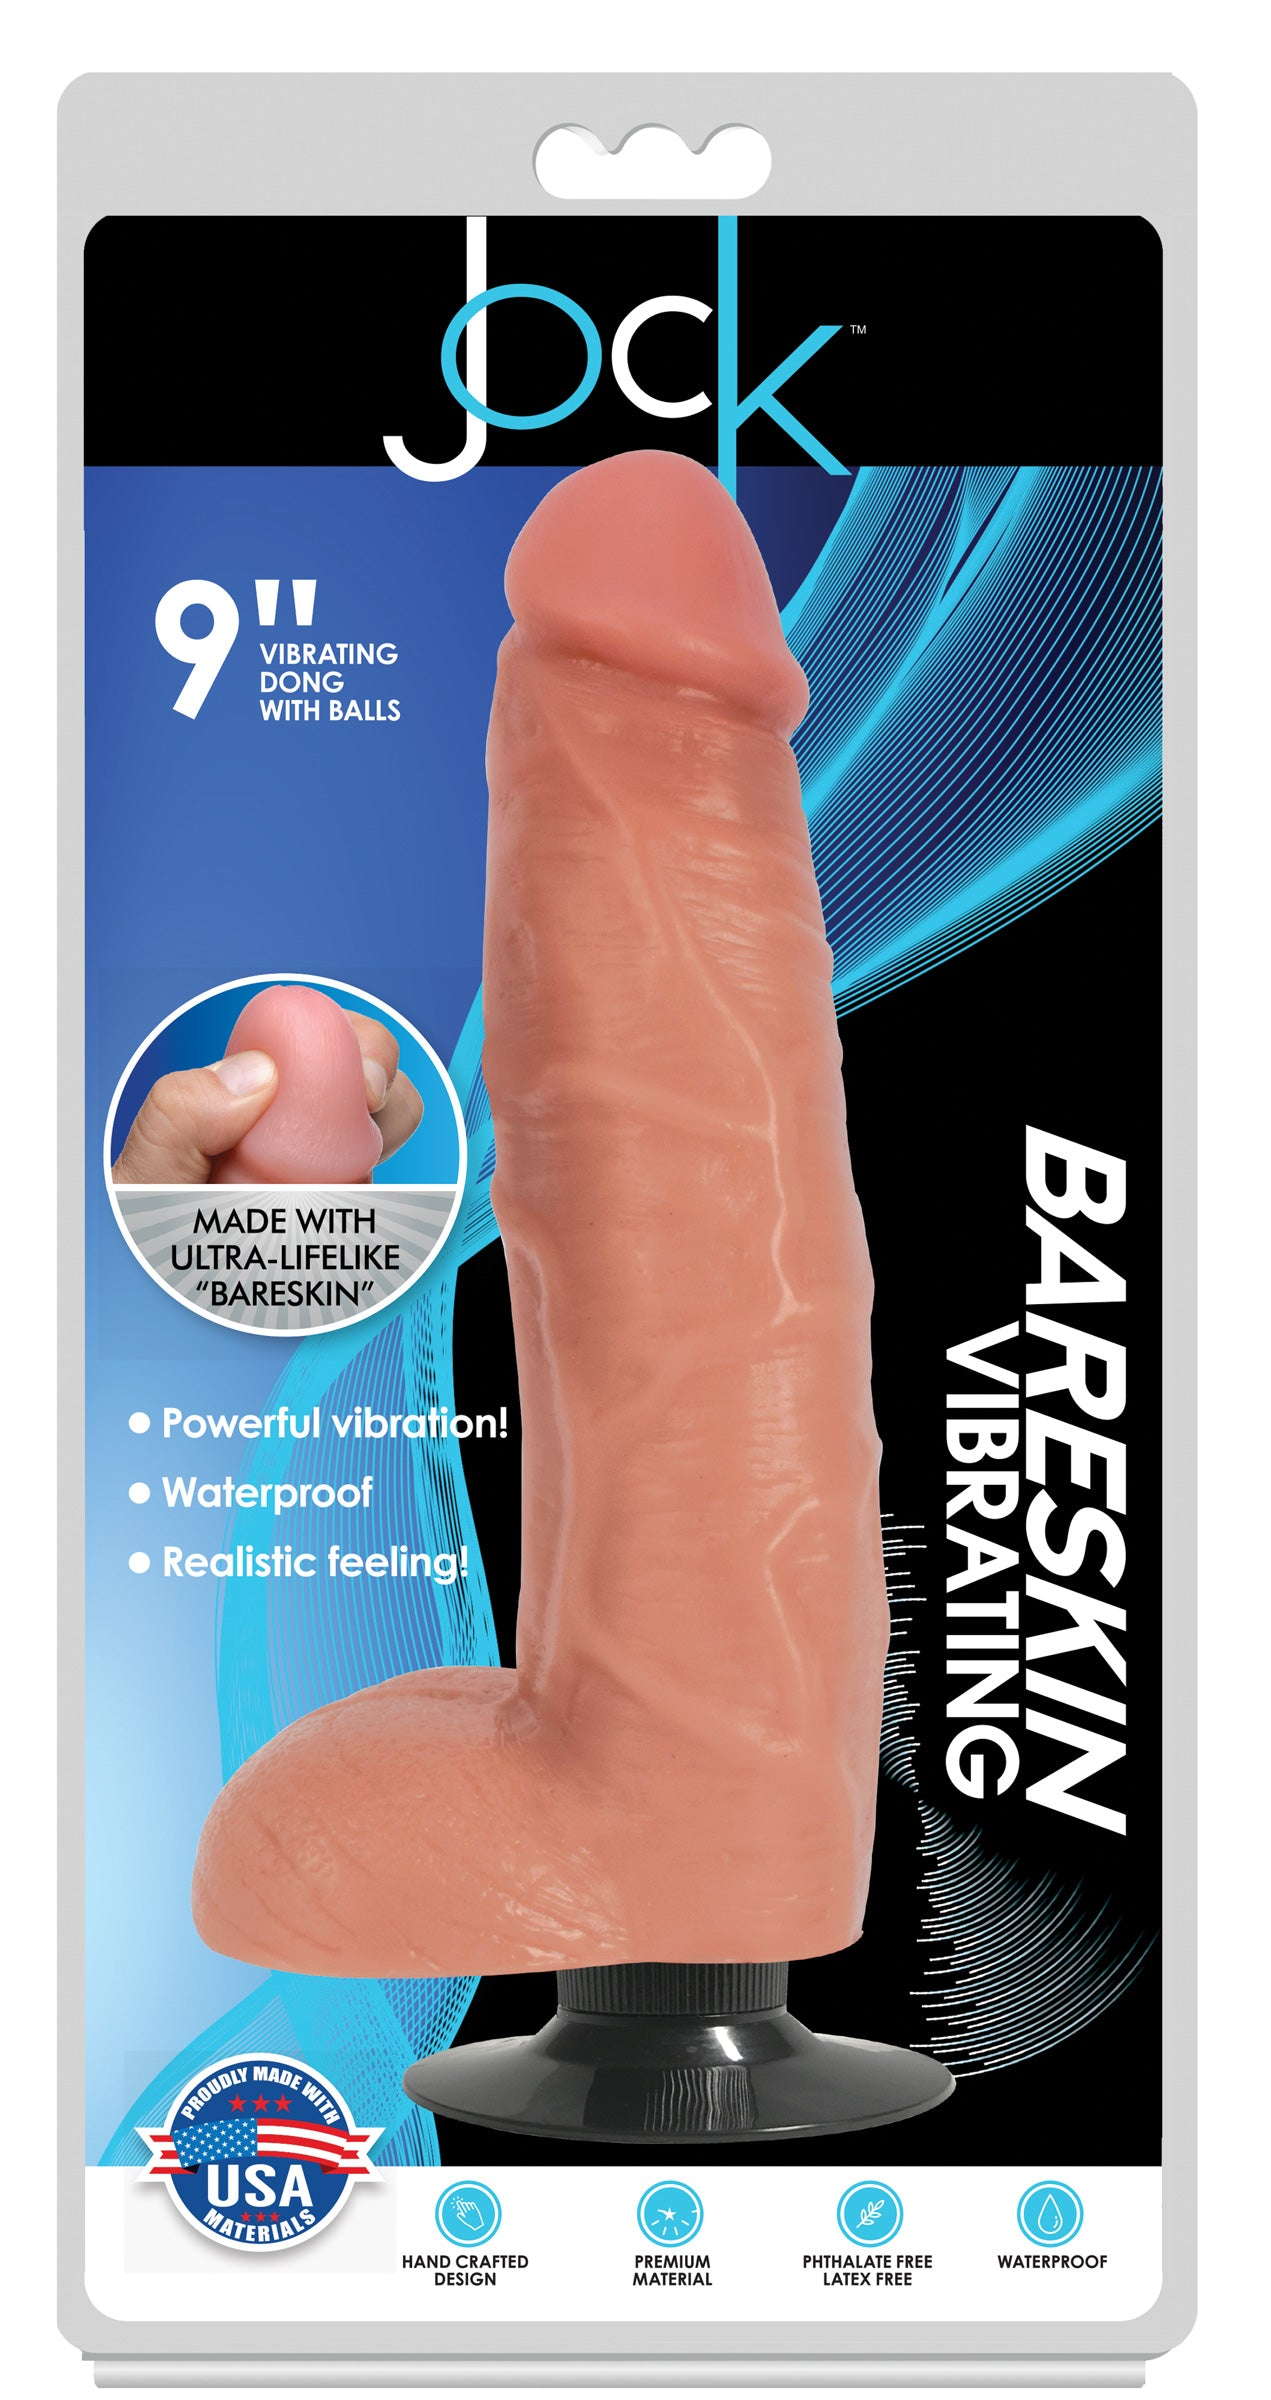 Jock Light Bareskin Vibrating Dildo With Balls - 9 Inch